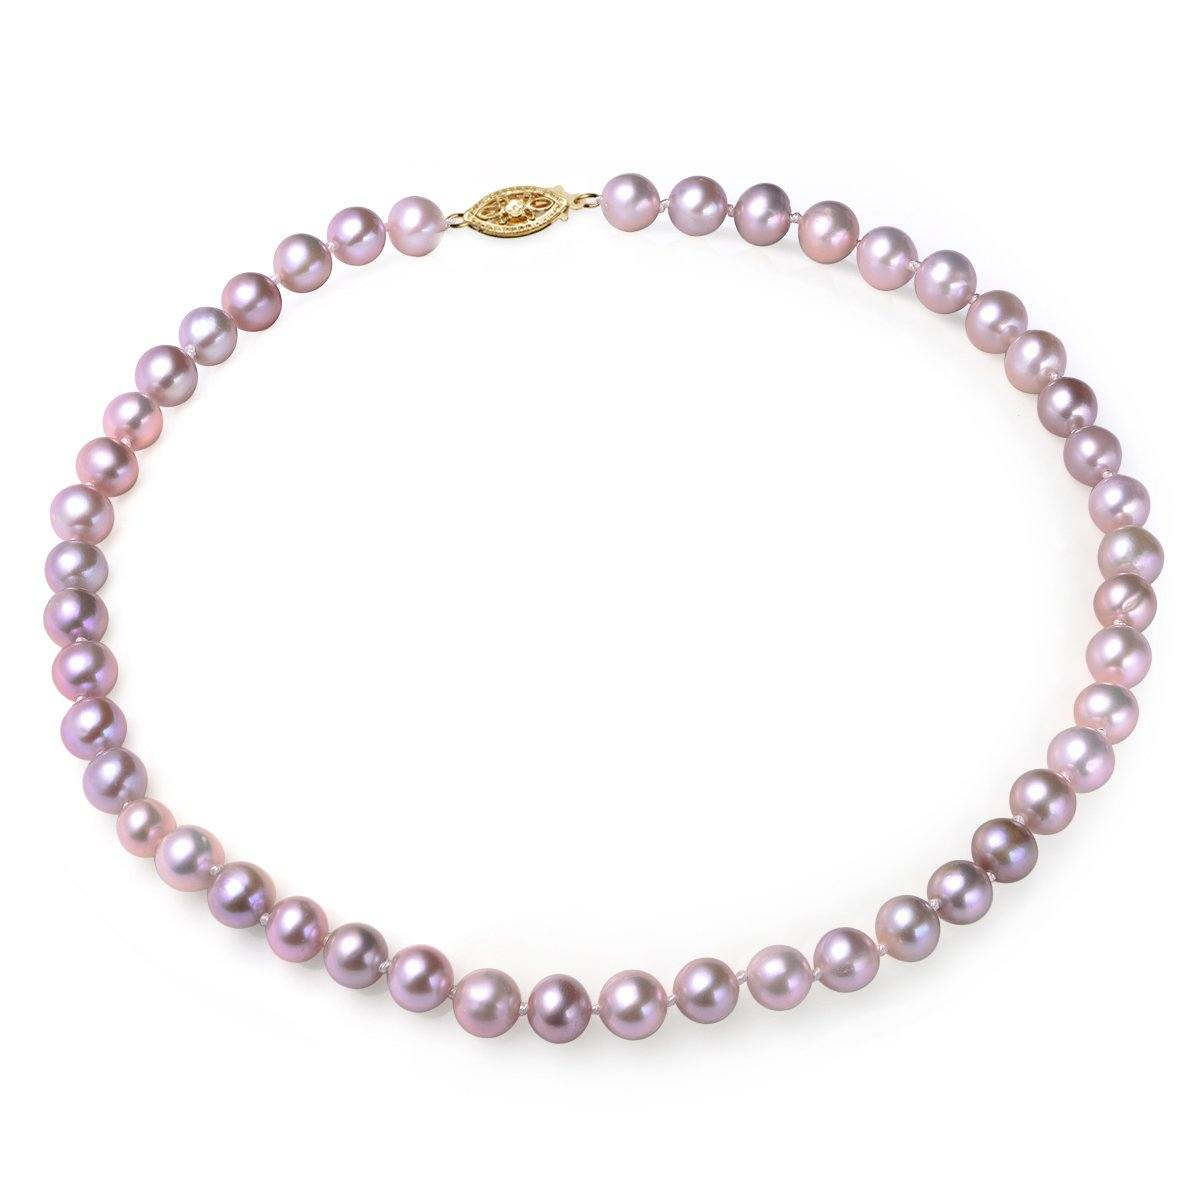 lavender 8-9mm aaa quality cultured freshwater pearl necklace with 14k yellow gold filled fish hook